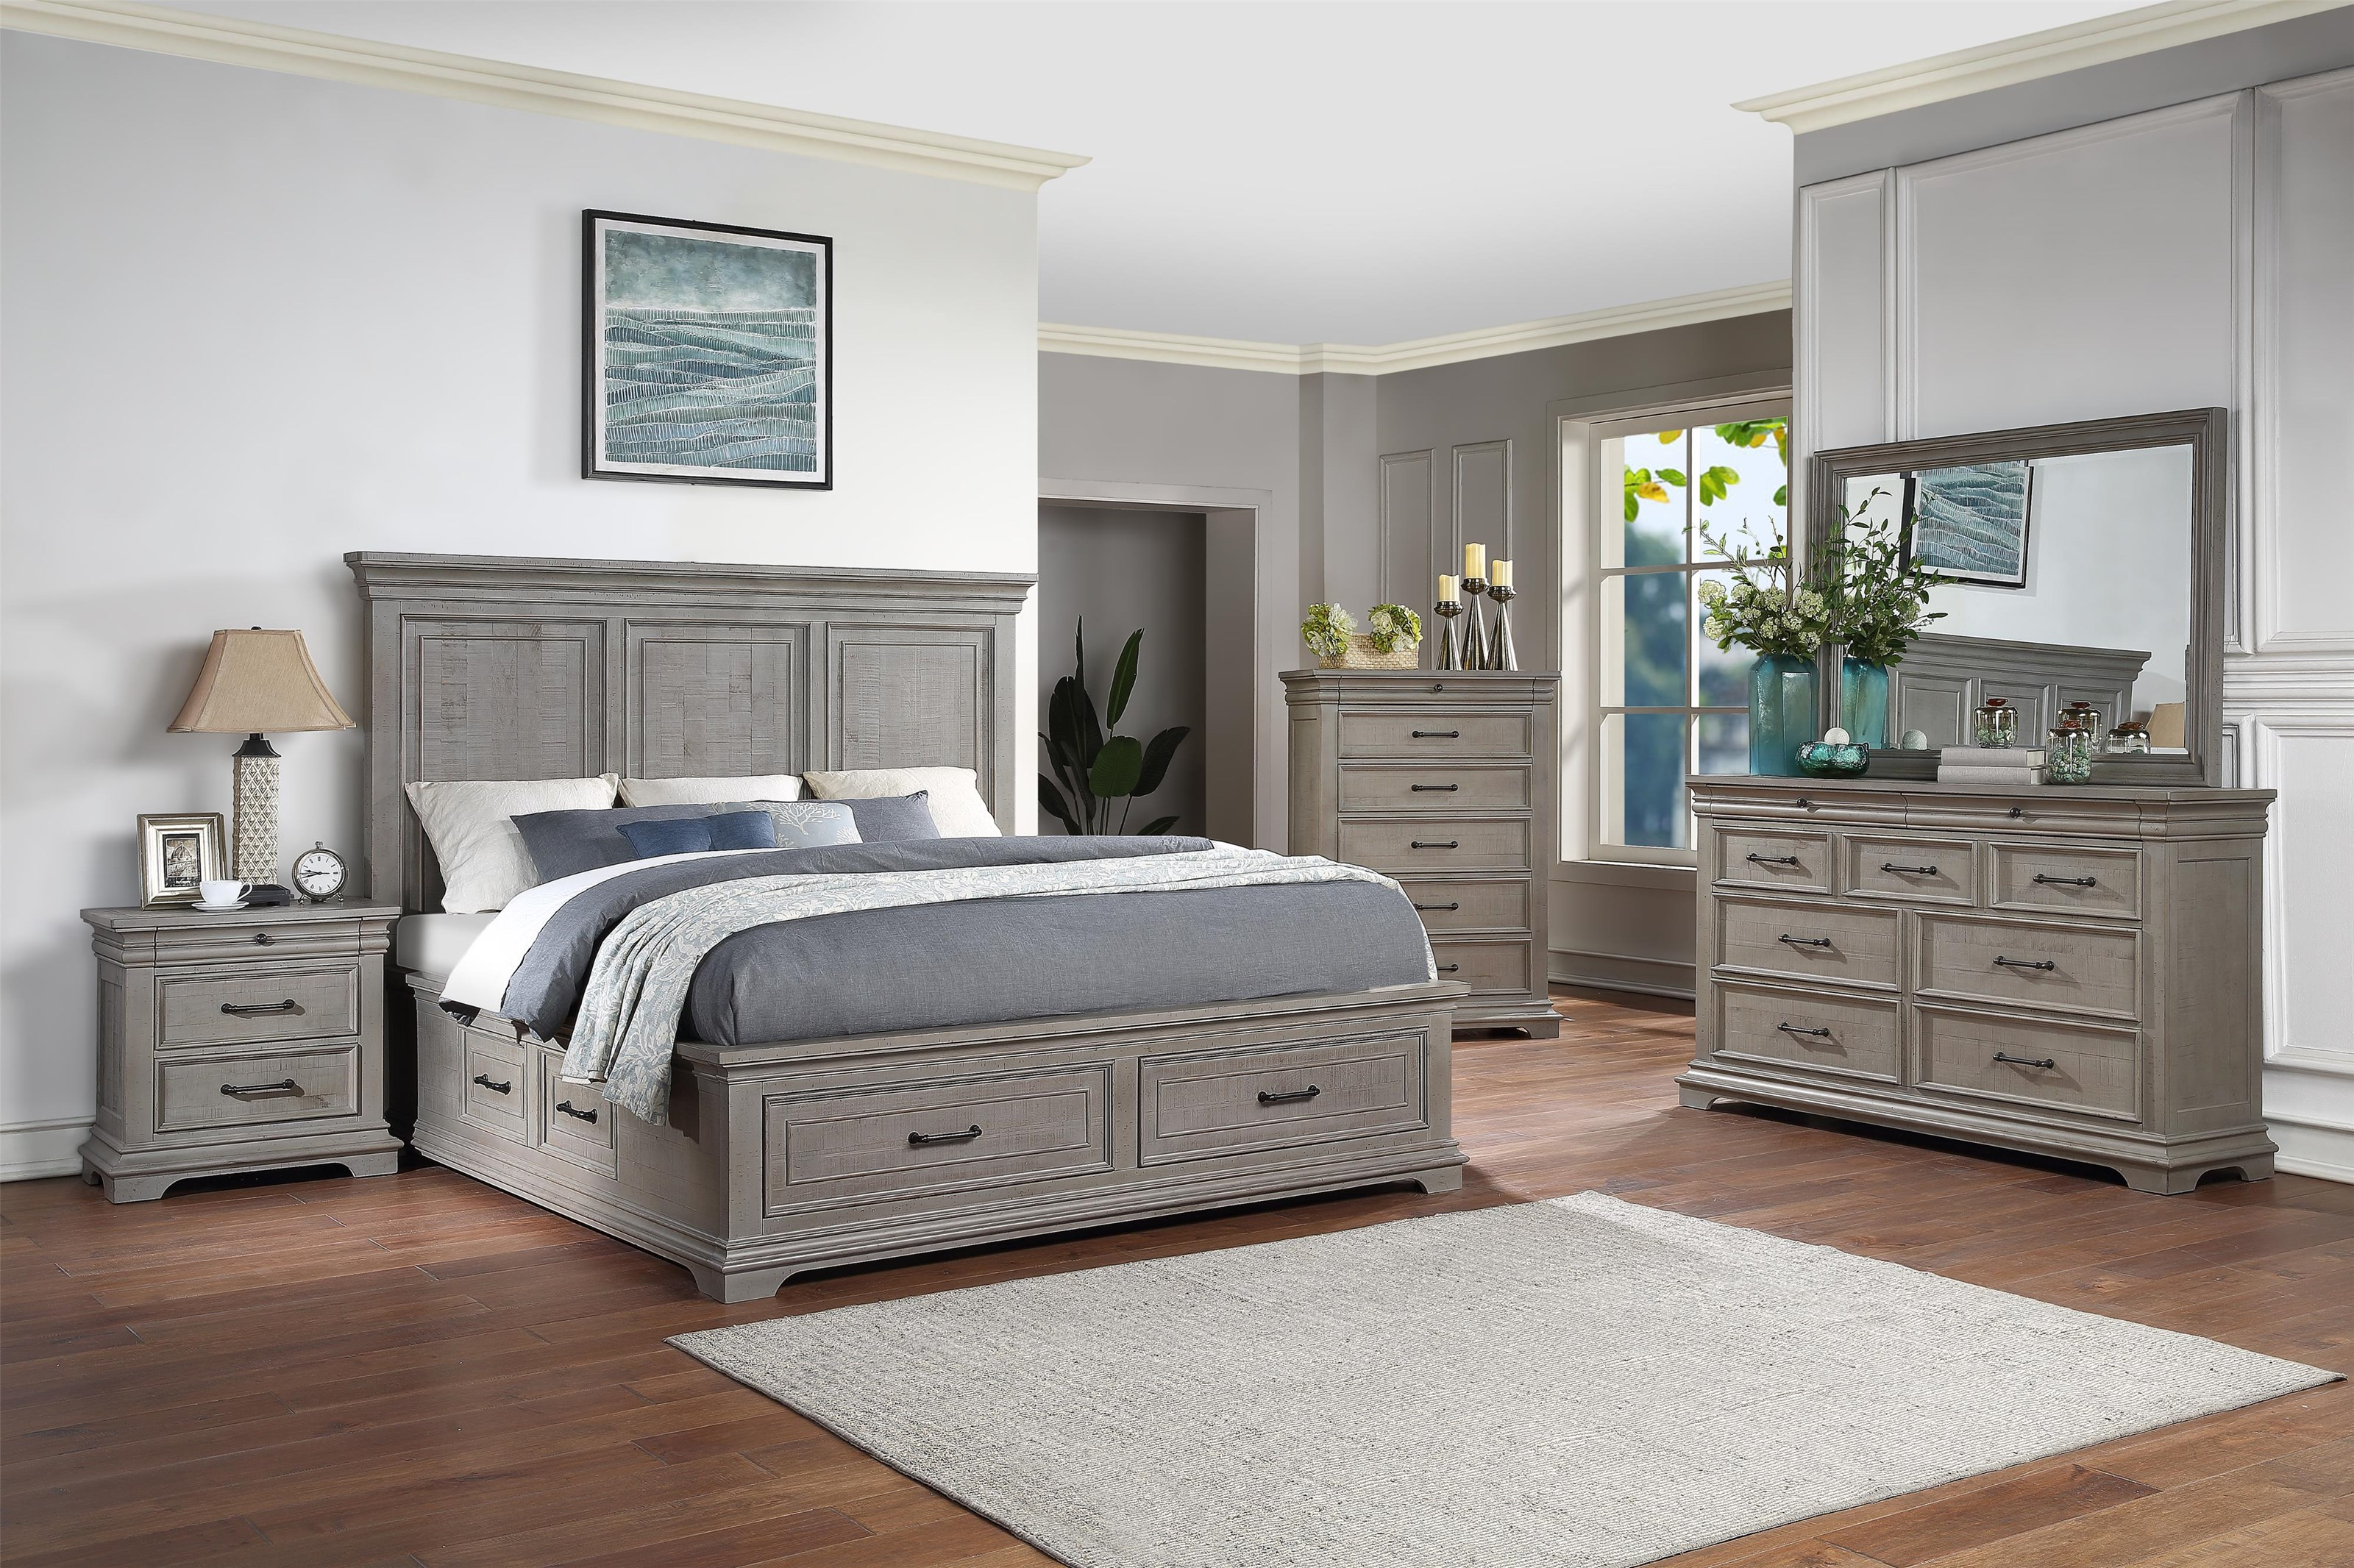 Lynd 5 Piece King Storage Bedroom by HH at Walker's Furniture